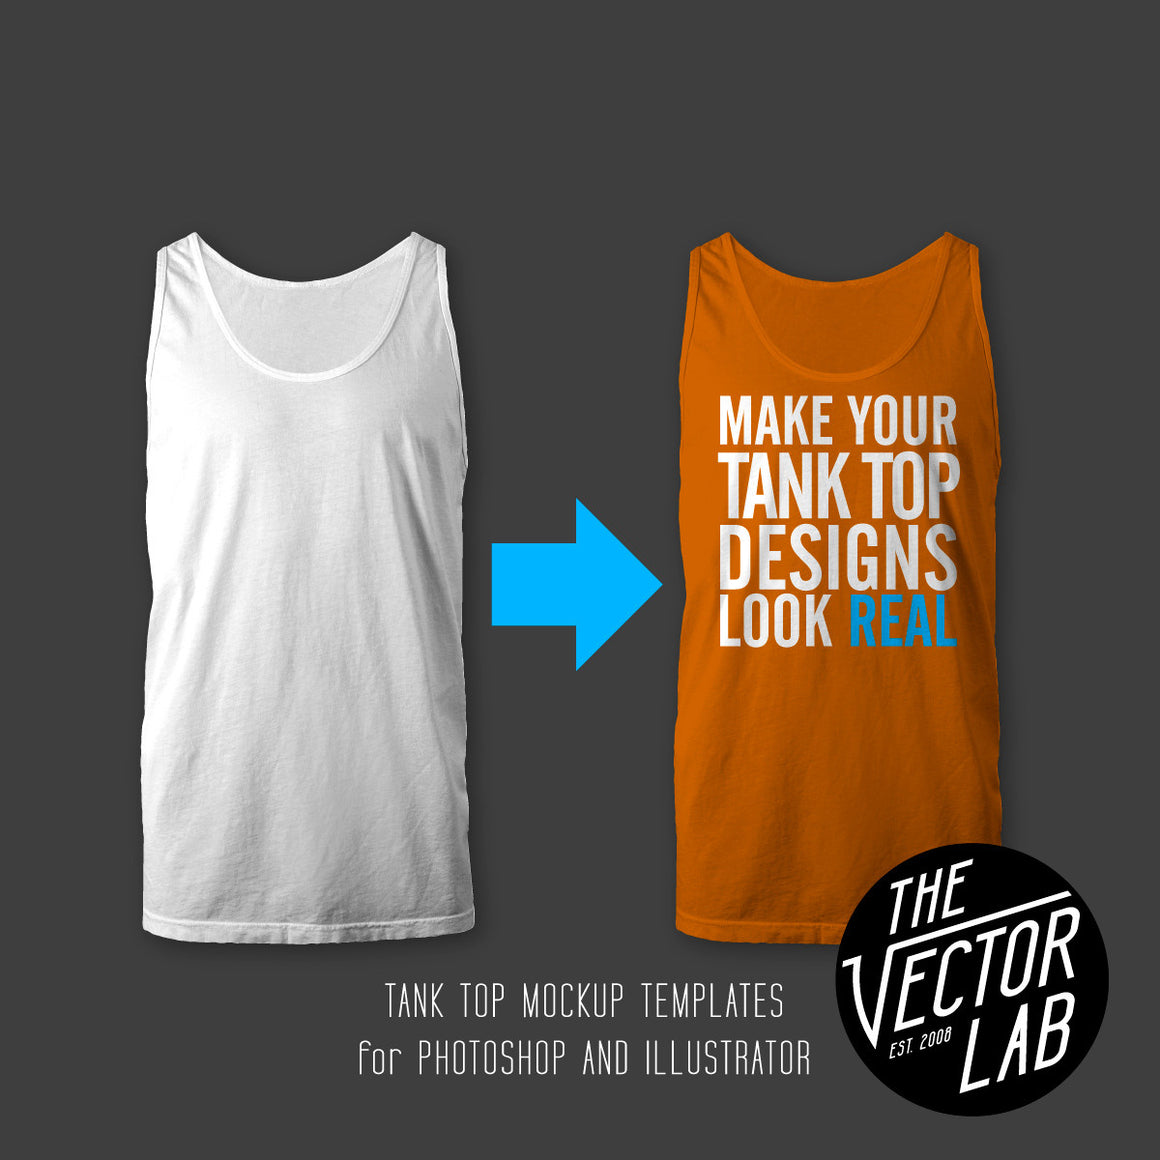 Men's Tank Top Shirt Mockup Templates for Photoshop and Illustrator